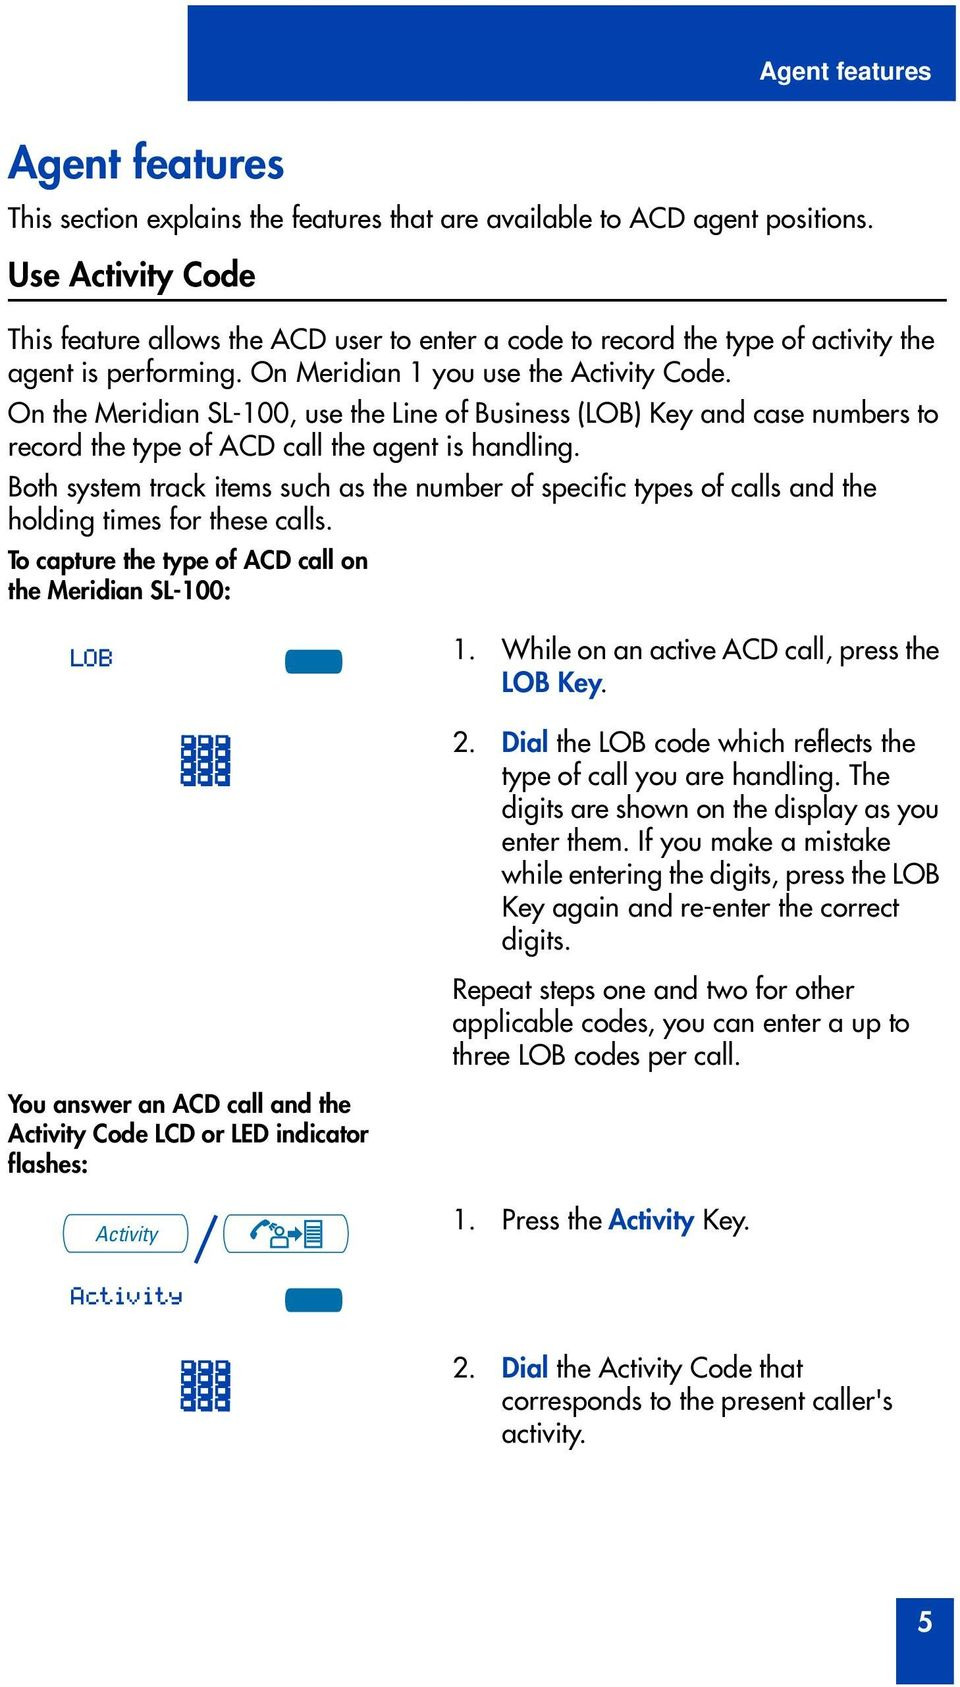 On the Meridian SL-100, use the Line of Business (LOB) Key and case numbers to record the type of ACD call the agent is handling.